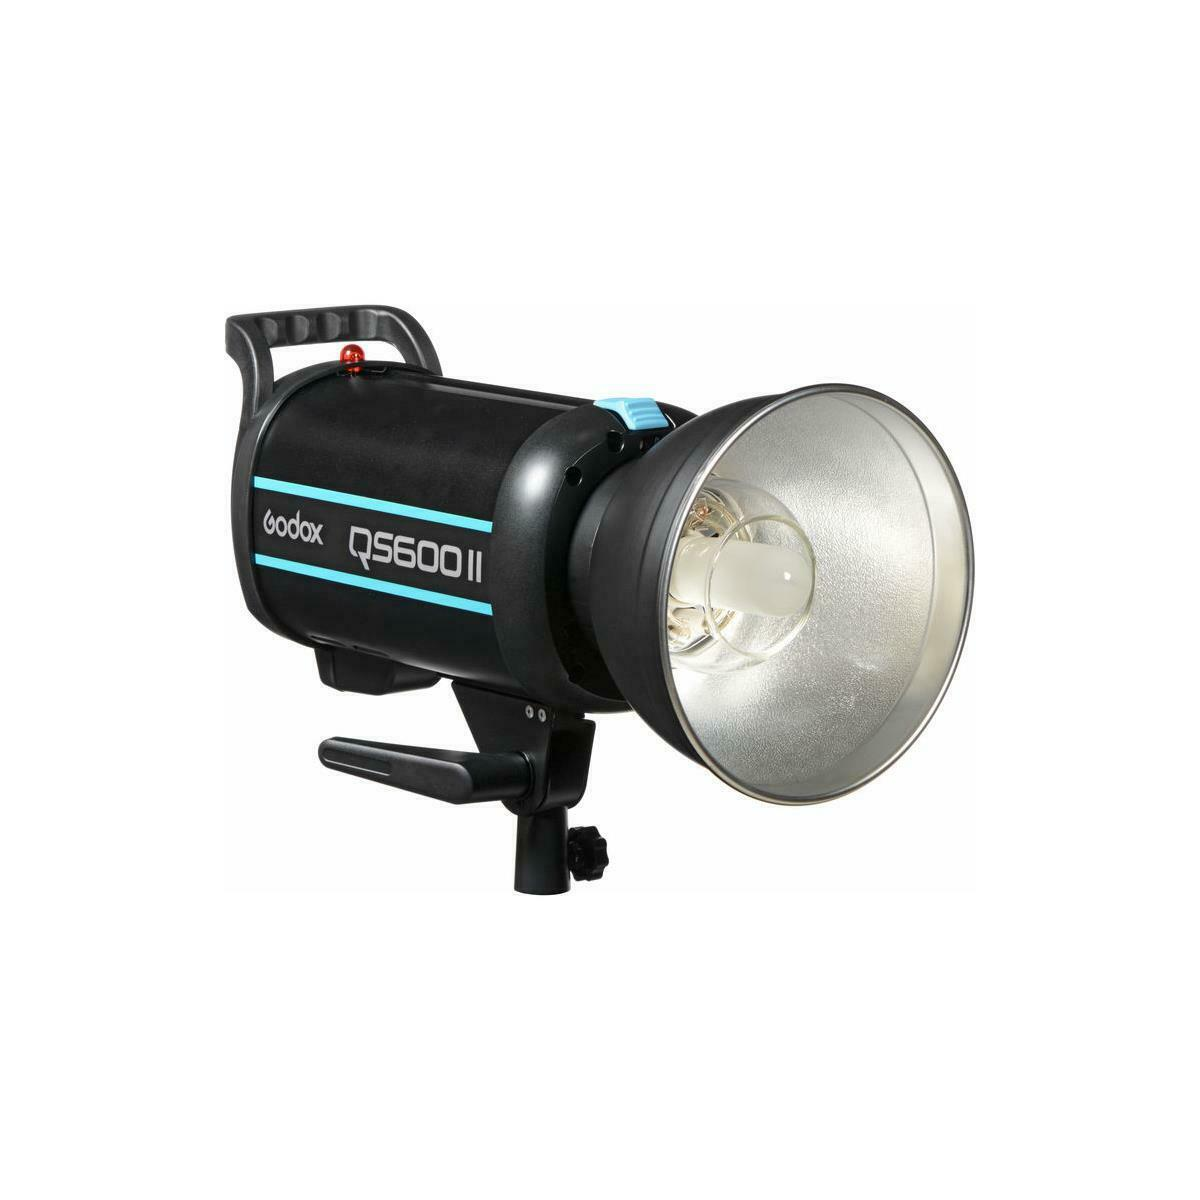 Godox QS600II Flash Head 600Ws Built-in 2.4G Wireless 110v